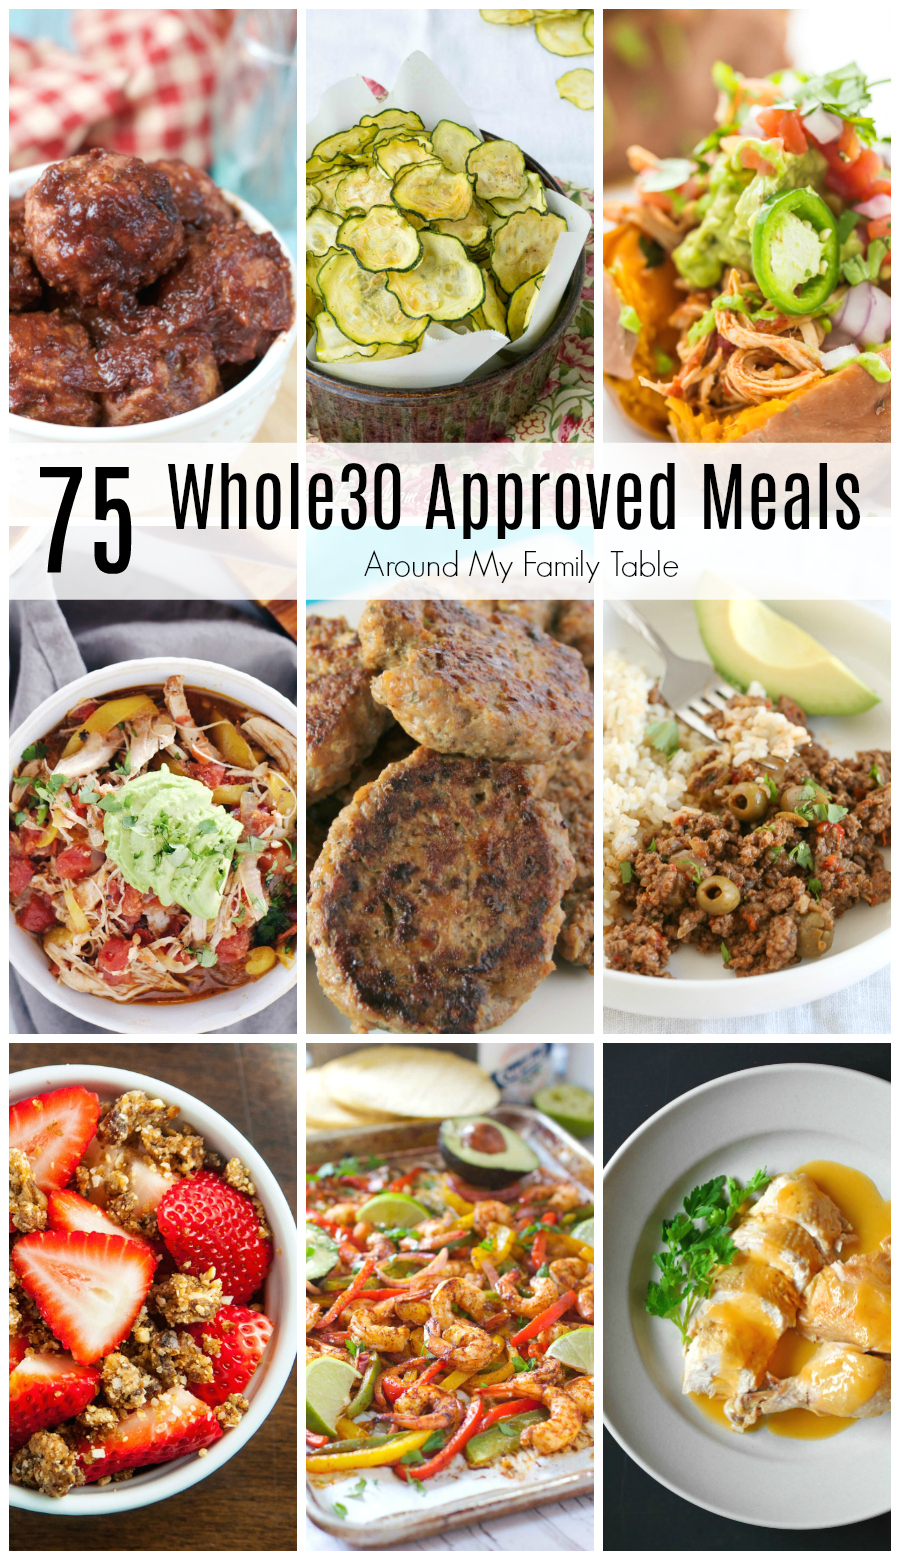 One Month of Whole30 Recipes is all you'll need to successfully complete a round of Whole30.  From delicious suppers to snacks and even a few desserts.  The month will fly by with the help of these recipes! #whole30 #whole30recipes #healthyrecipes